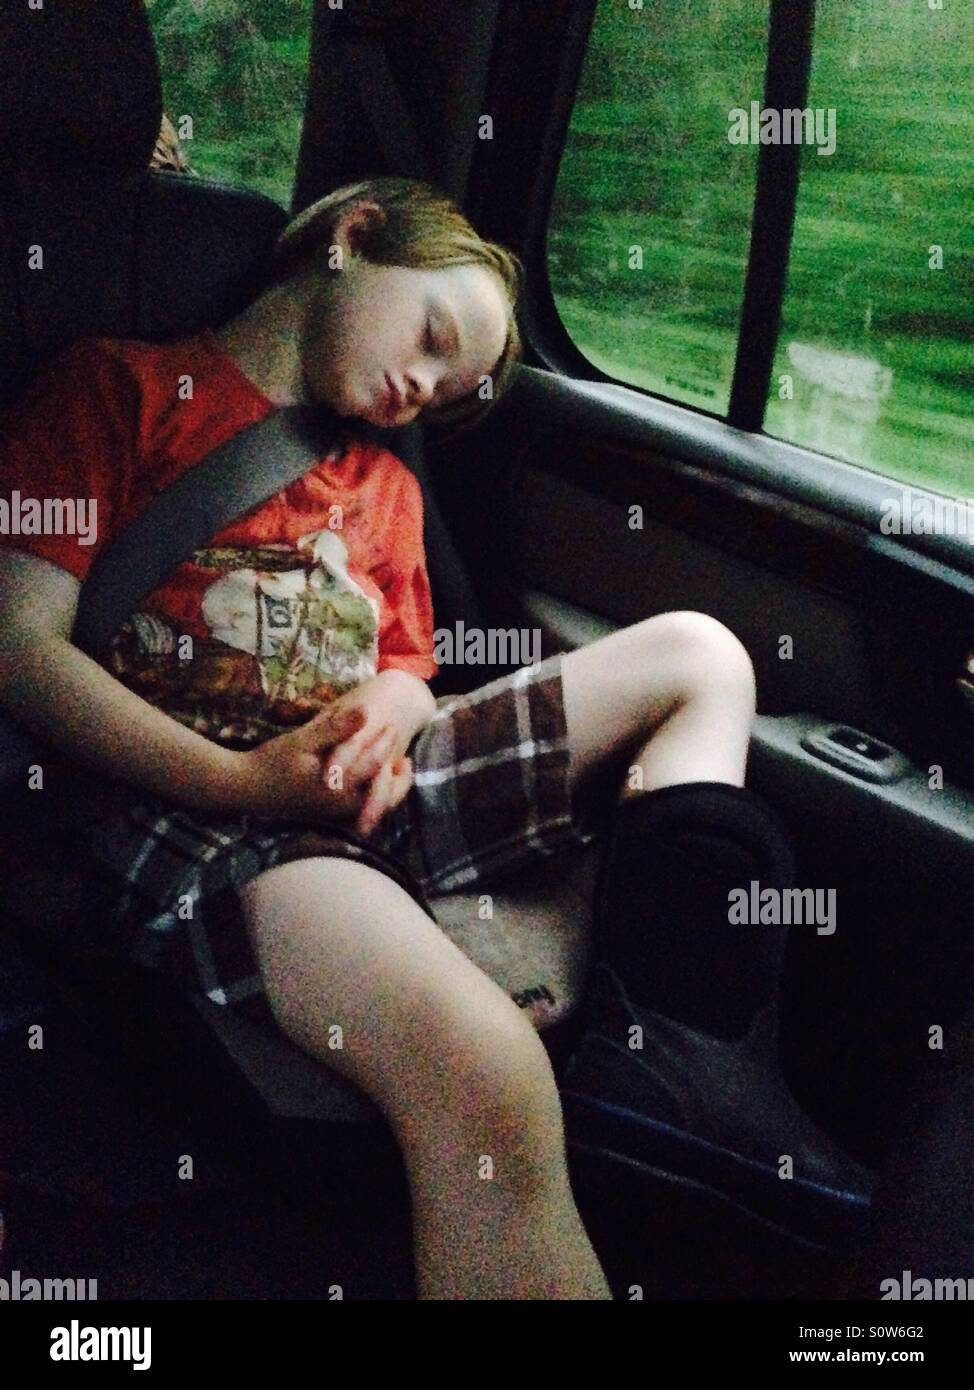 Boy sleeping in car during road trip - Stock Image